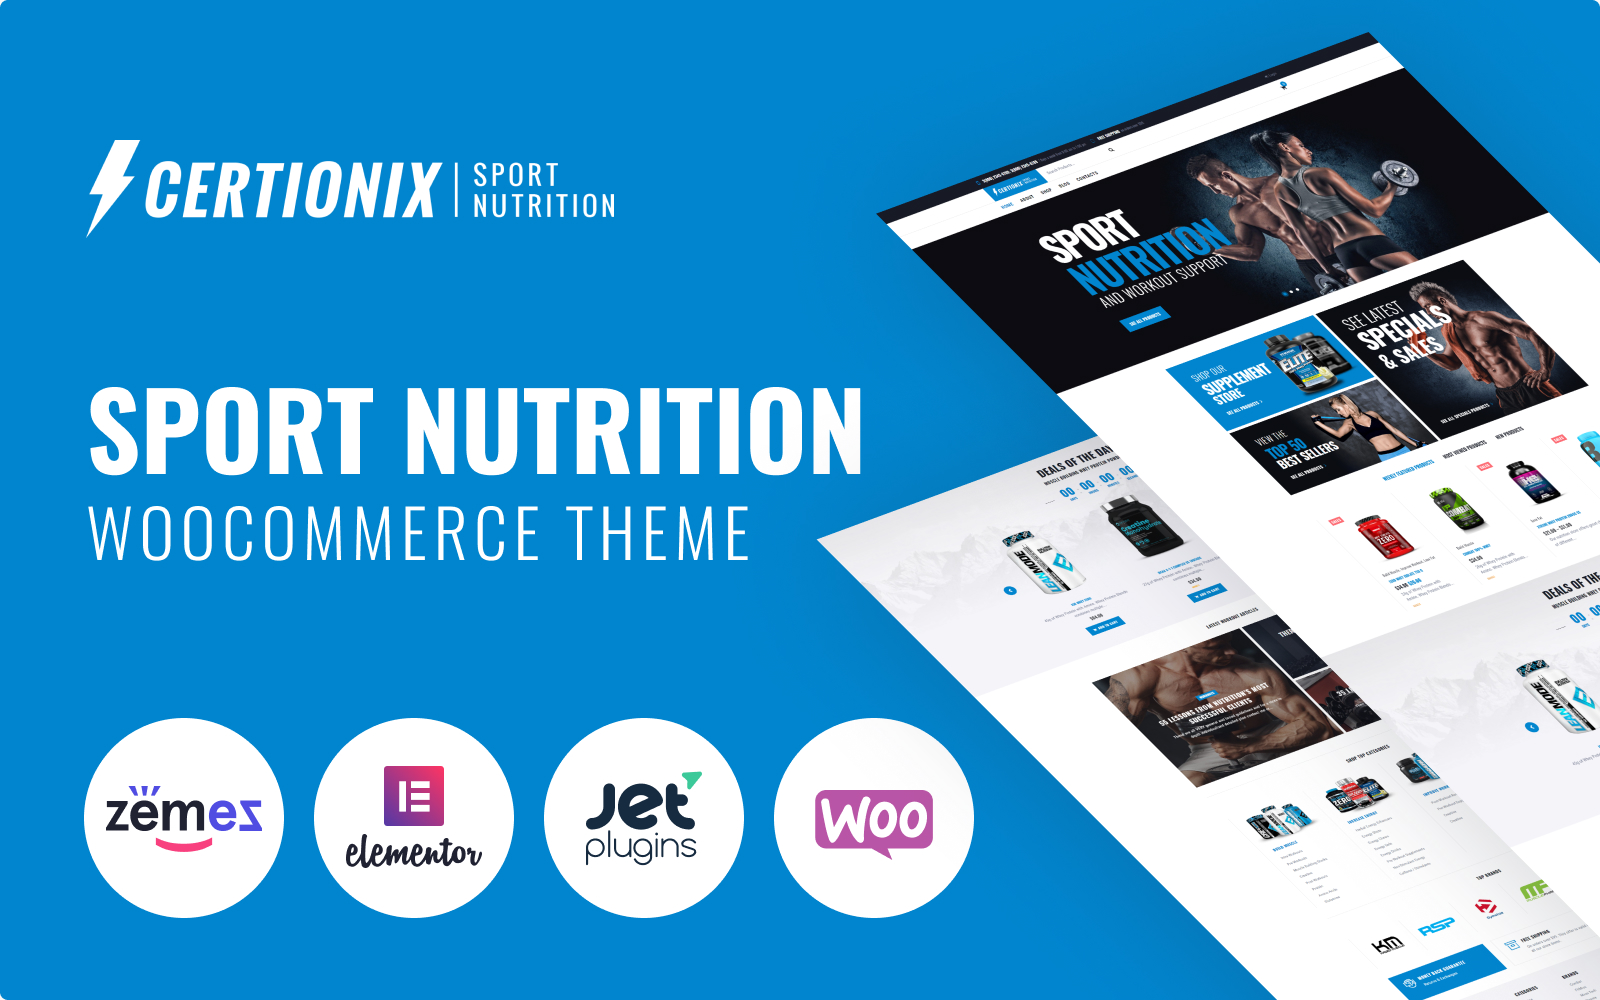 Responsivt Certionix - Sport Nutrition Website Template with Woocommerce and Elementor WooCommerce-tema #65870